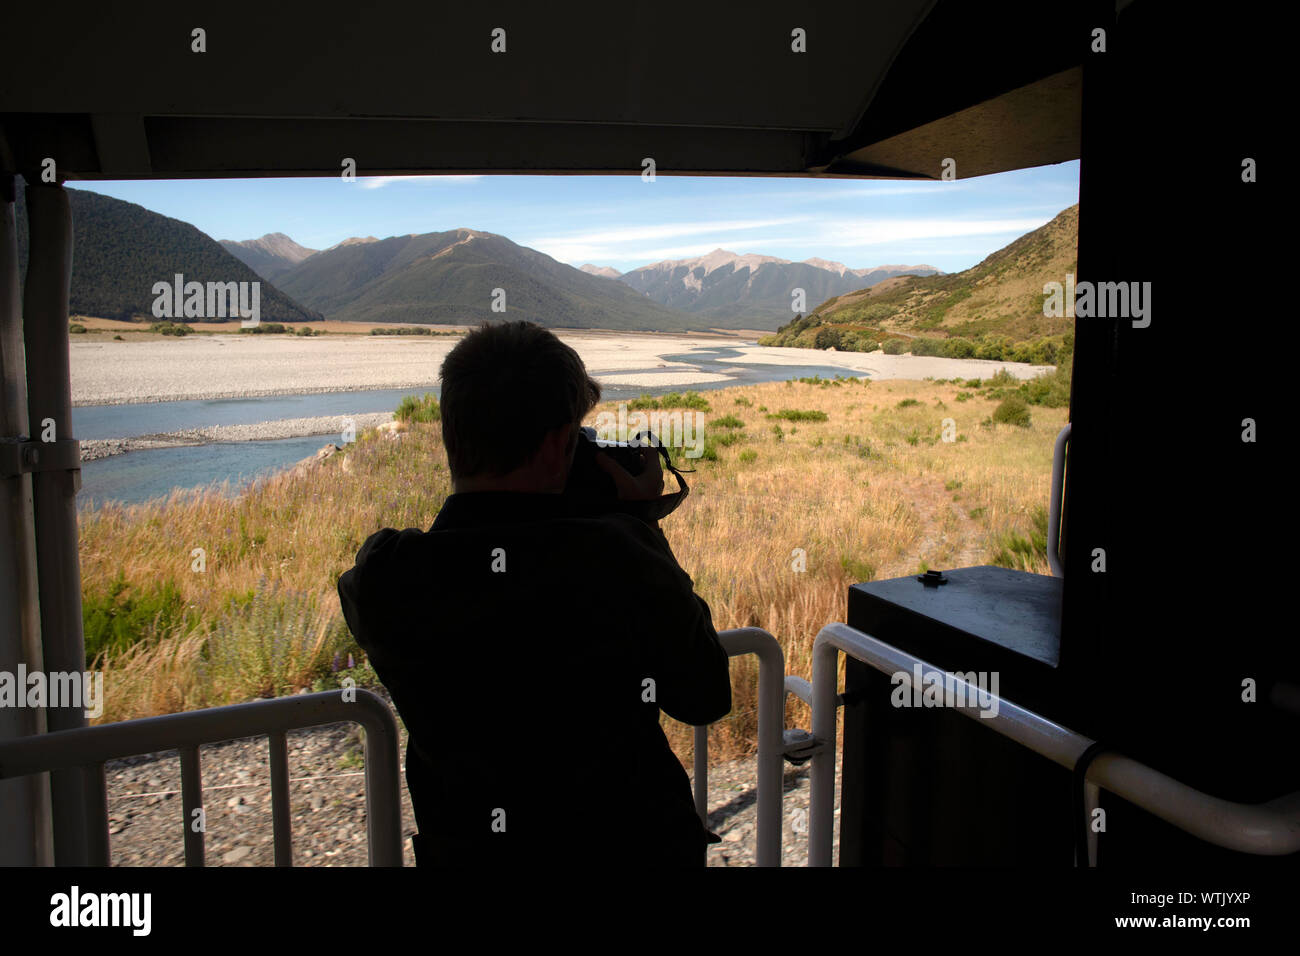 Picture by Tim Cuff - 4 & 5 January 2019 - Tranz Alpine train journey from Christchurch to Greymouth, New Zealand: spectacular scenery at the train ap Stock Photo